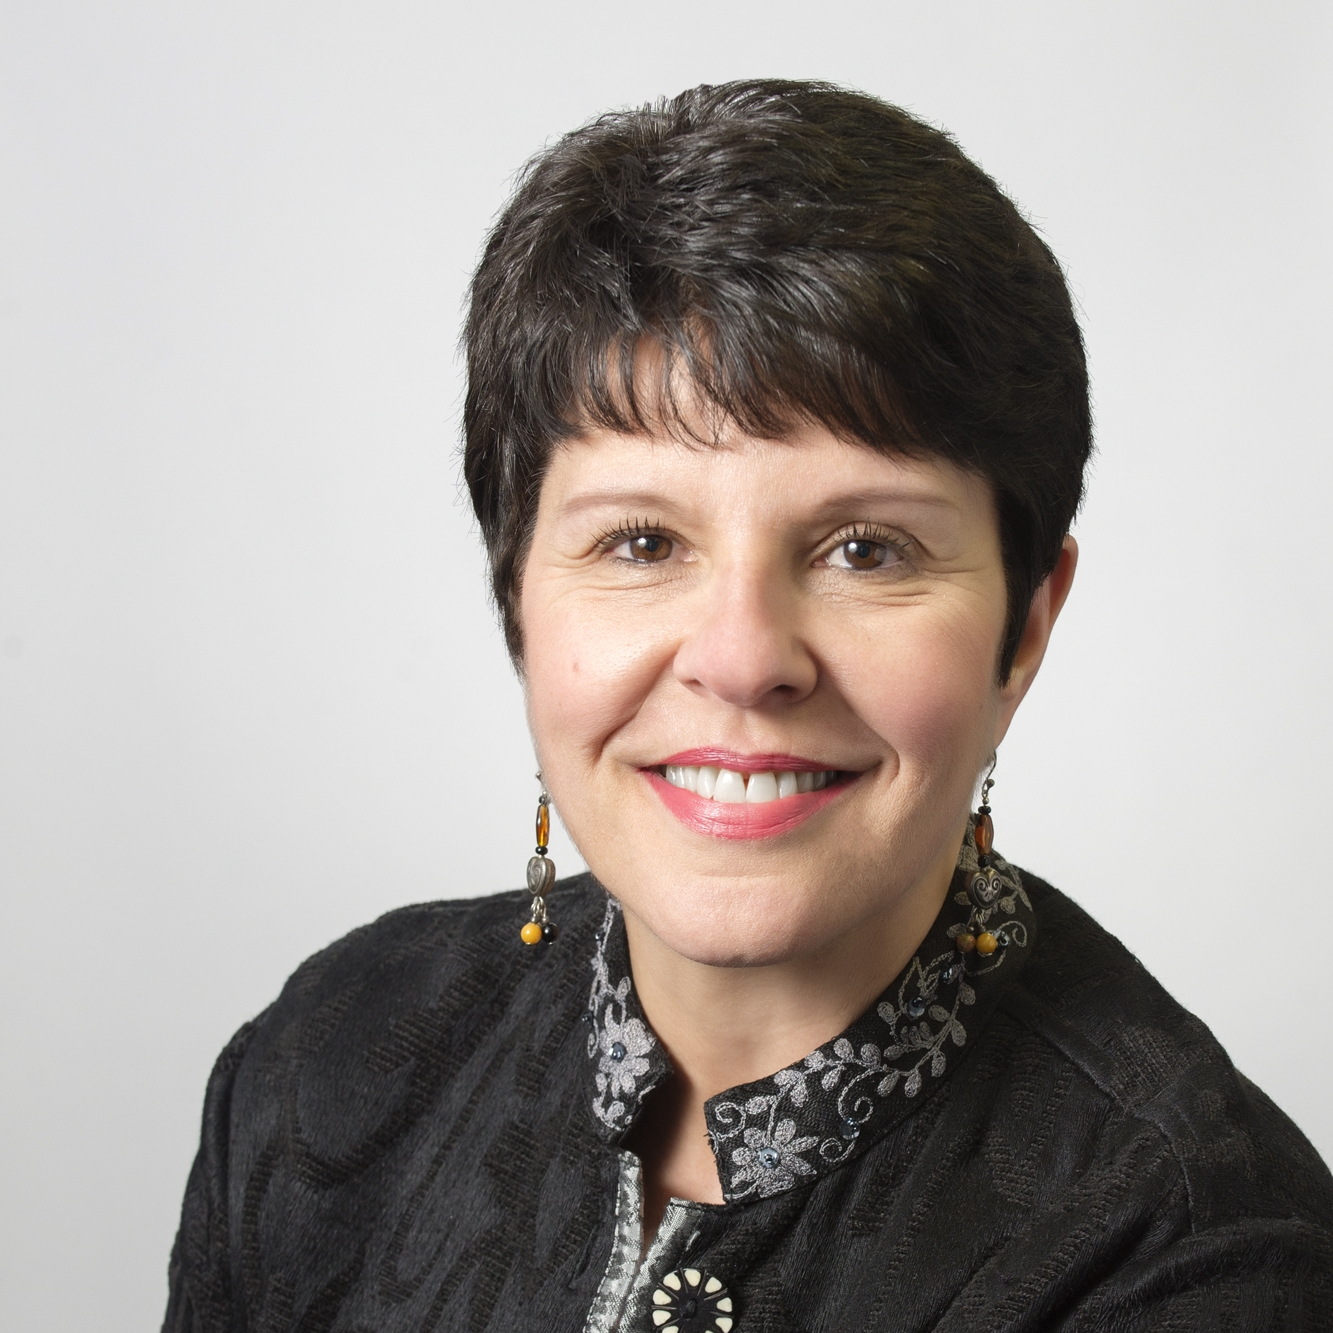 Mary Cowgill, M.A. CBIST, Assistant Director of Neuro-Rehabilitation Services/Psychotherapist